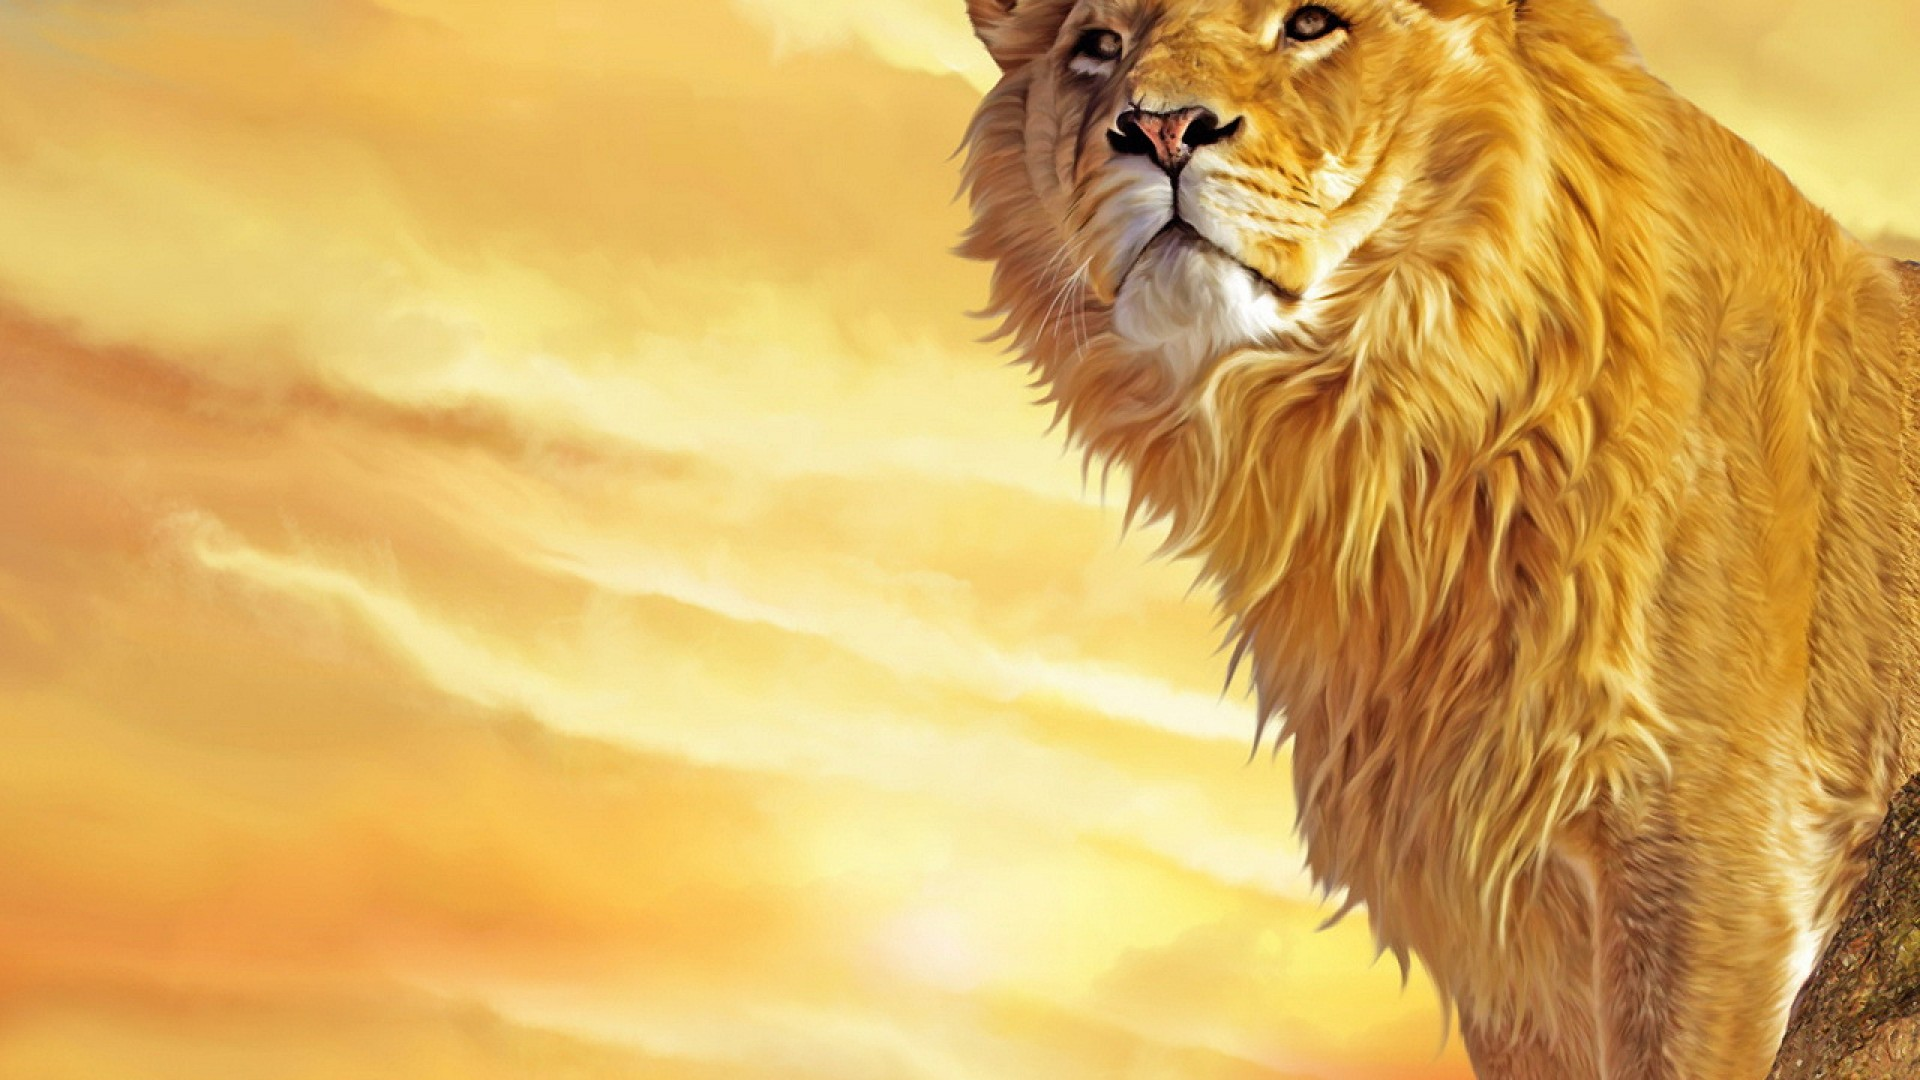 Lion Wallpapers Best Wallpapers